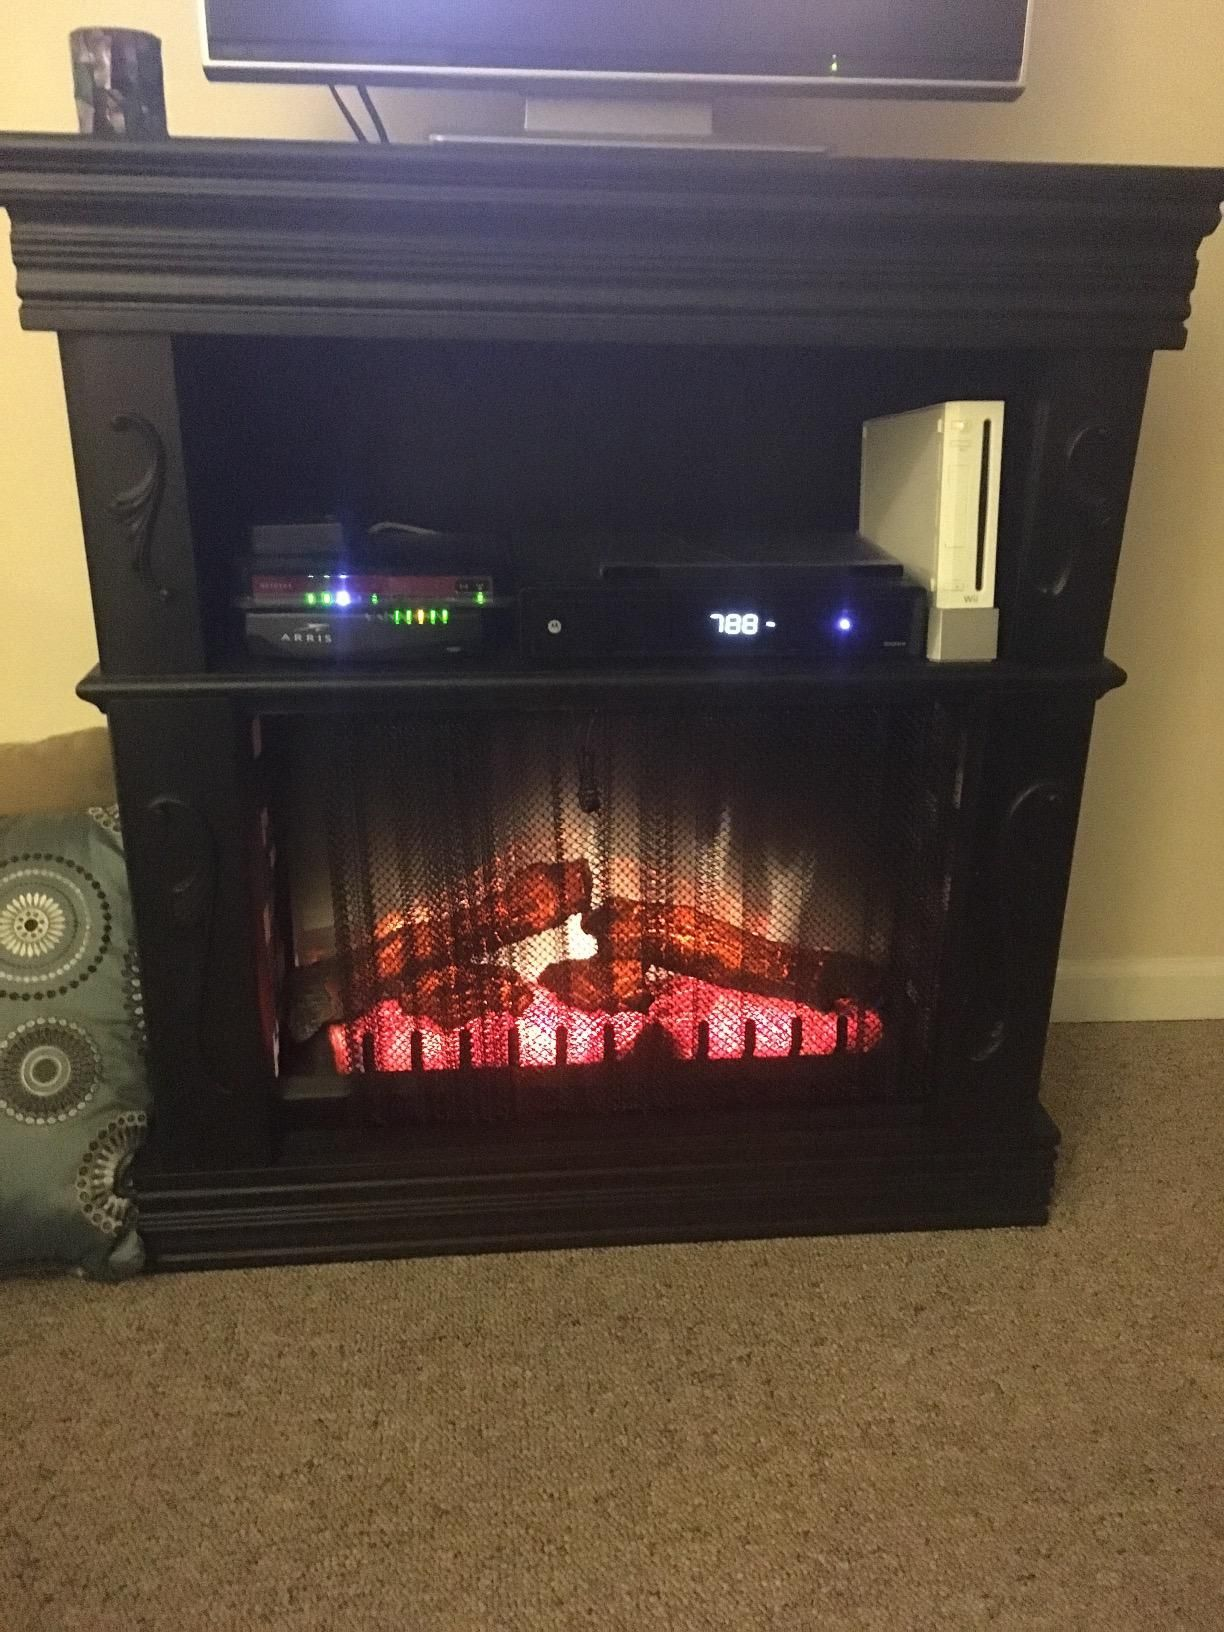 Best Electric Fireplace Reviews In 2020 Best Electric Fireplace Electric Fireplace Reviews Electric Fireplace